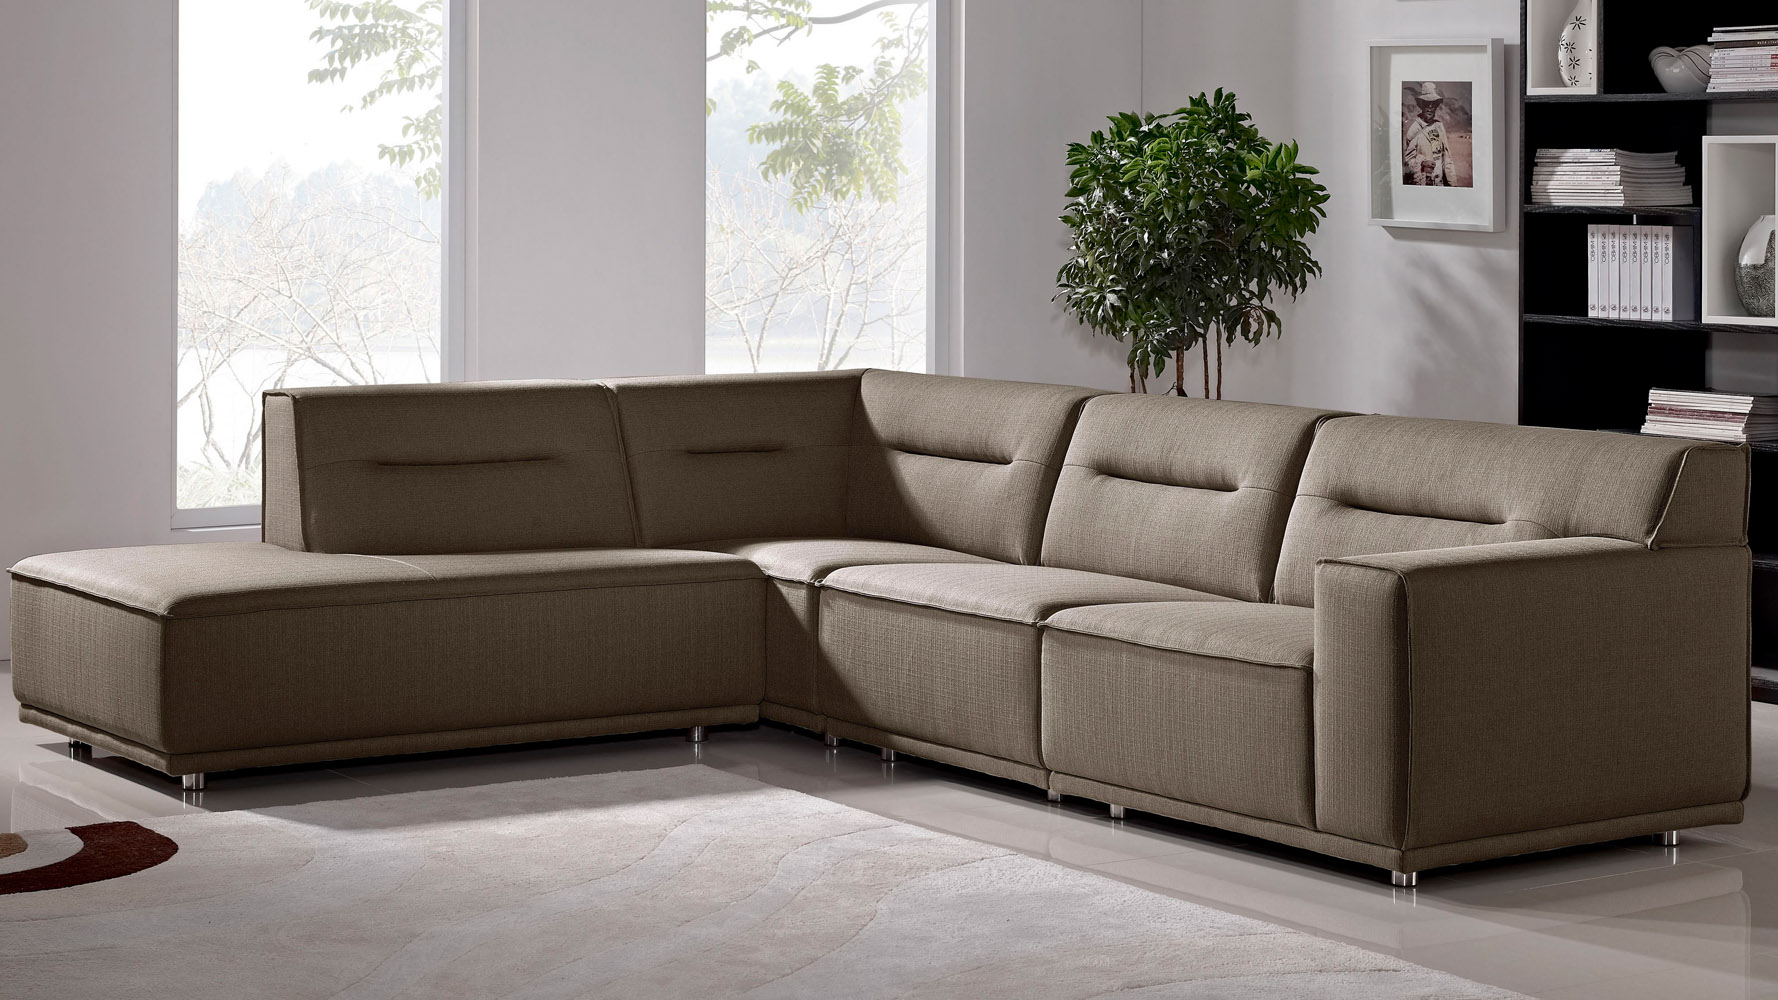 Modern Fabric Upholstered 4 Piece Ravello Sectional Sofa